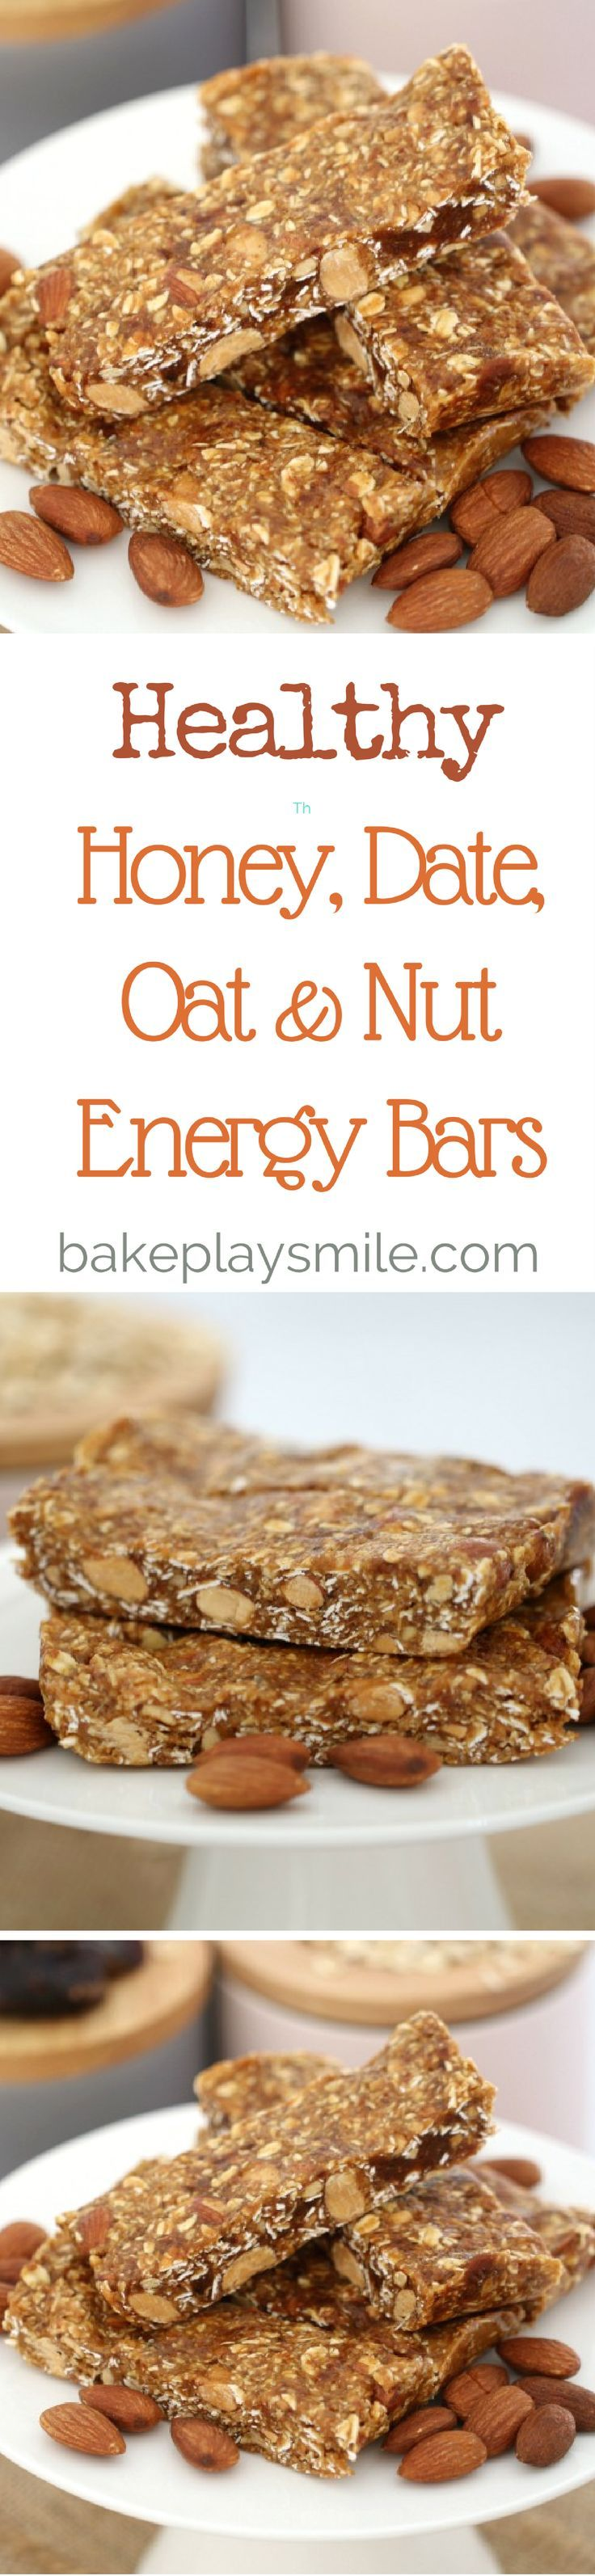 Thermomix Honey, Date, Oat & Nut Energy Bars  When you��re after a healthy boost, these Honey, Date, Oat & Nut Energy Bars are just what you need. The perfect mid-afternoon pick-me-up! #healthy #energy #bars #slice #fit #workout #thermomix #conventional